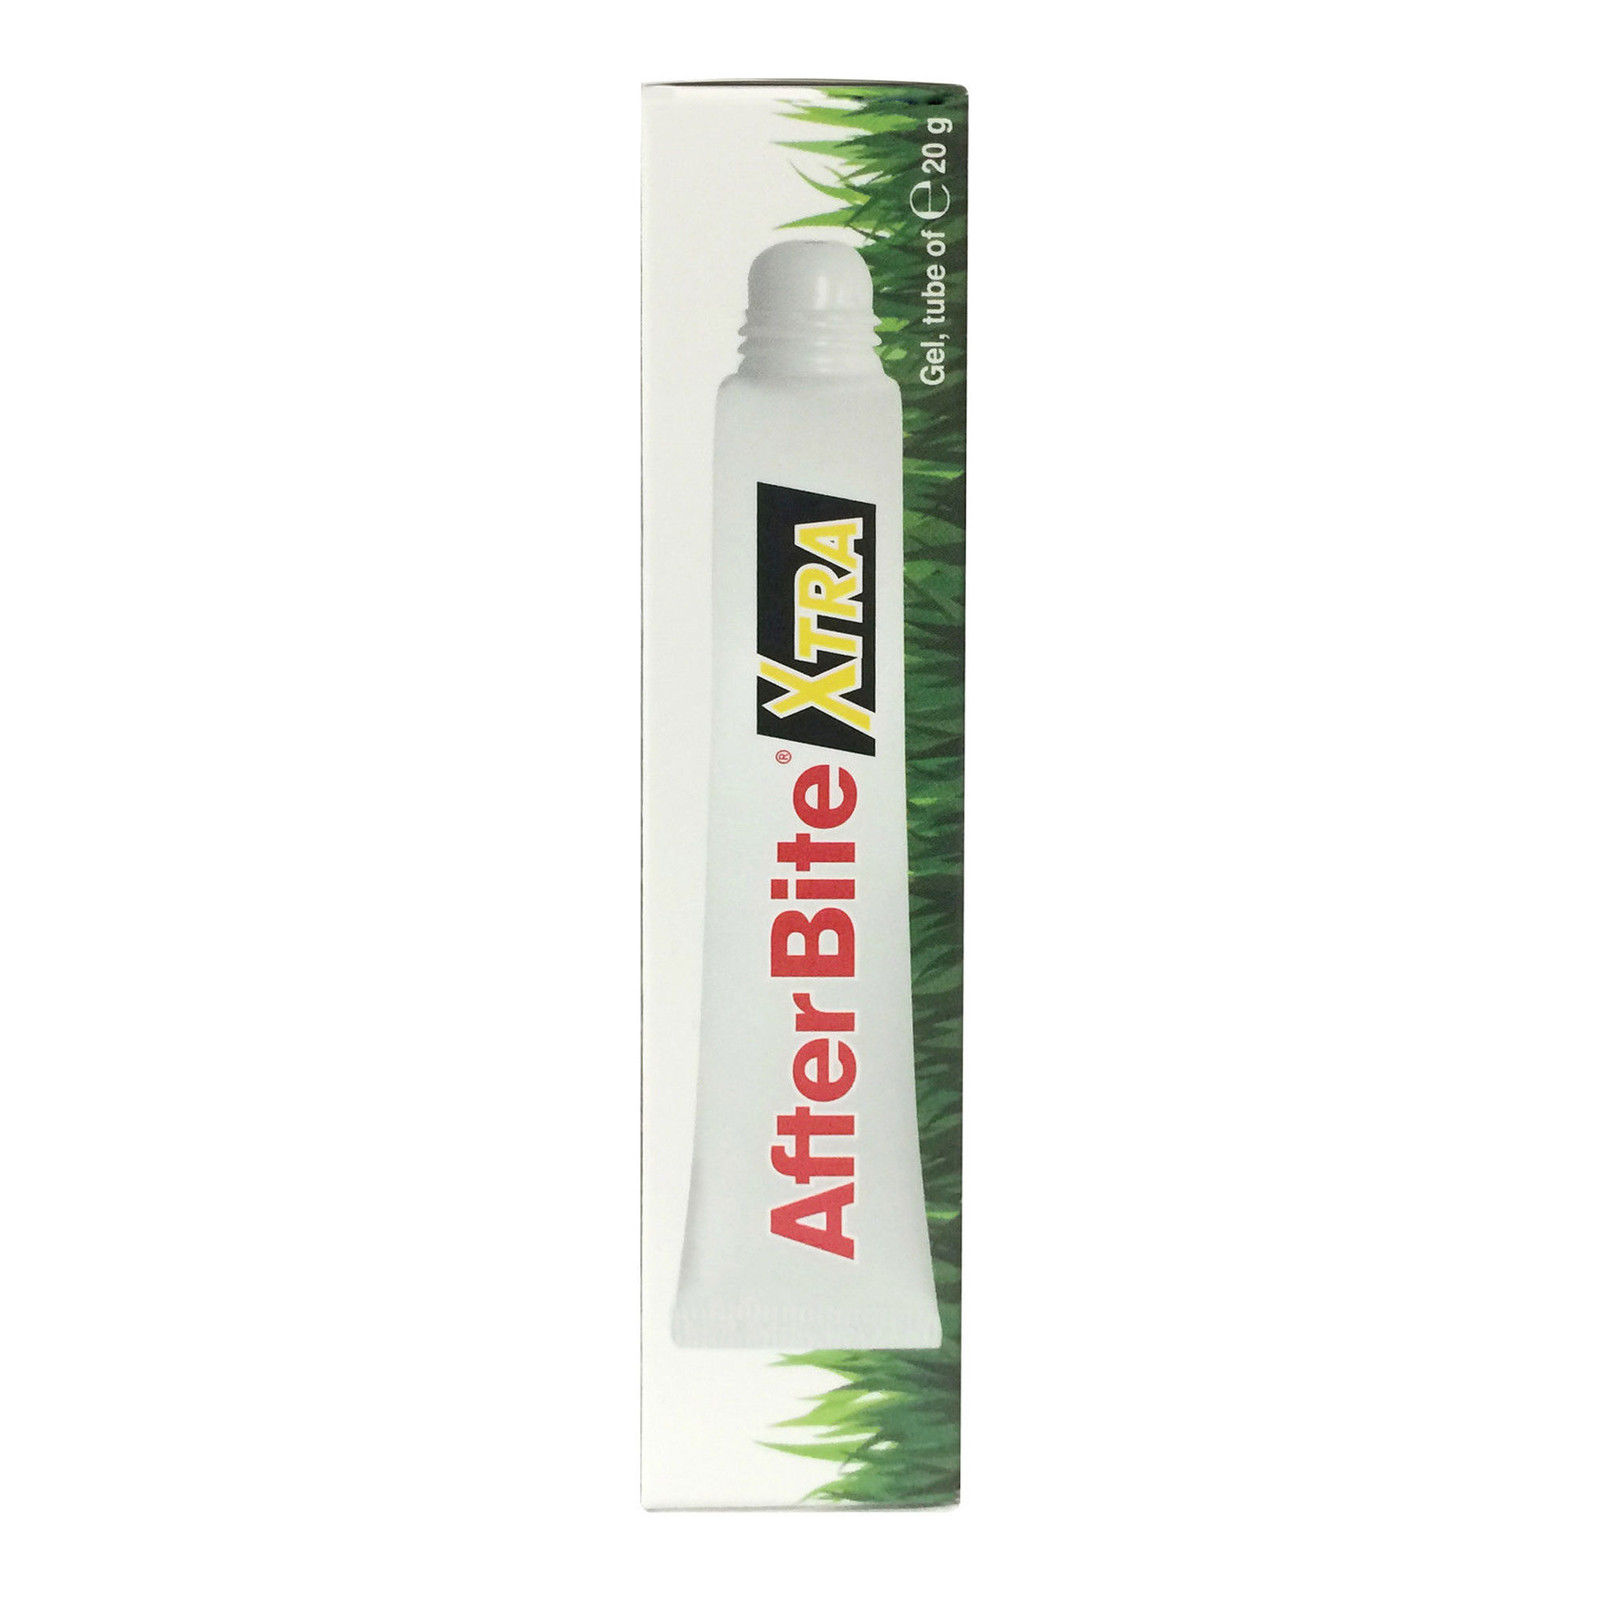 After Bite Xtra Insect Bites Gel 20g - Multi Quantity